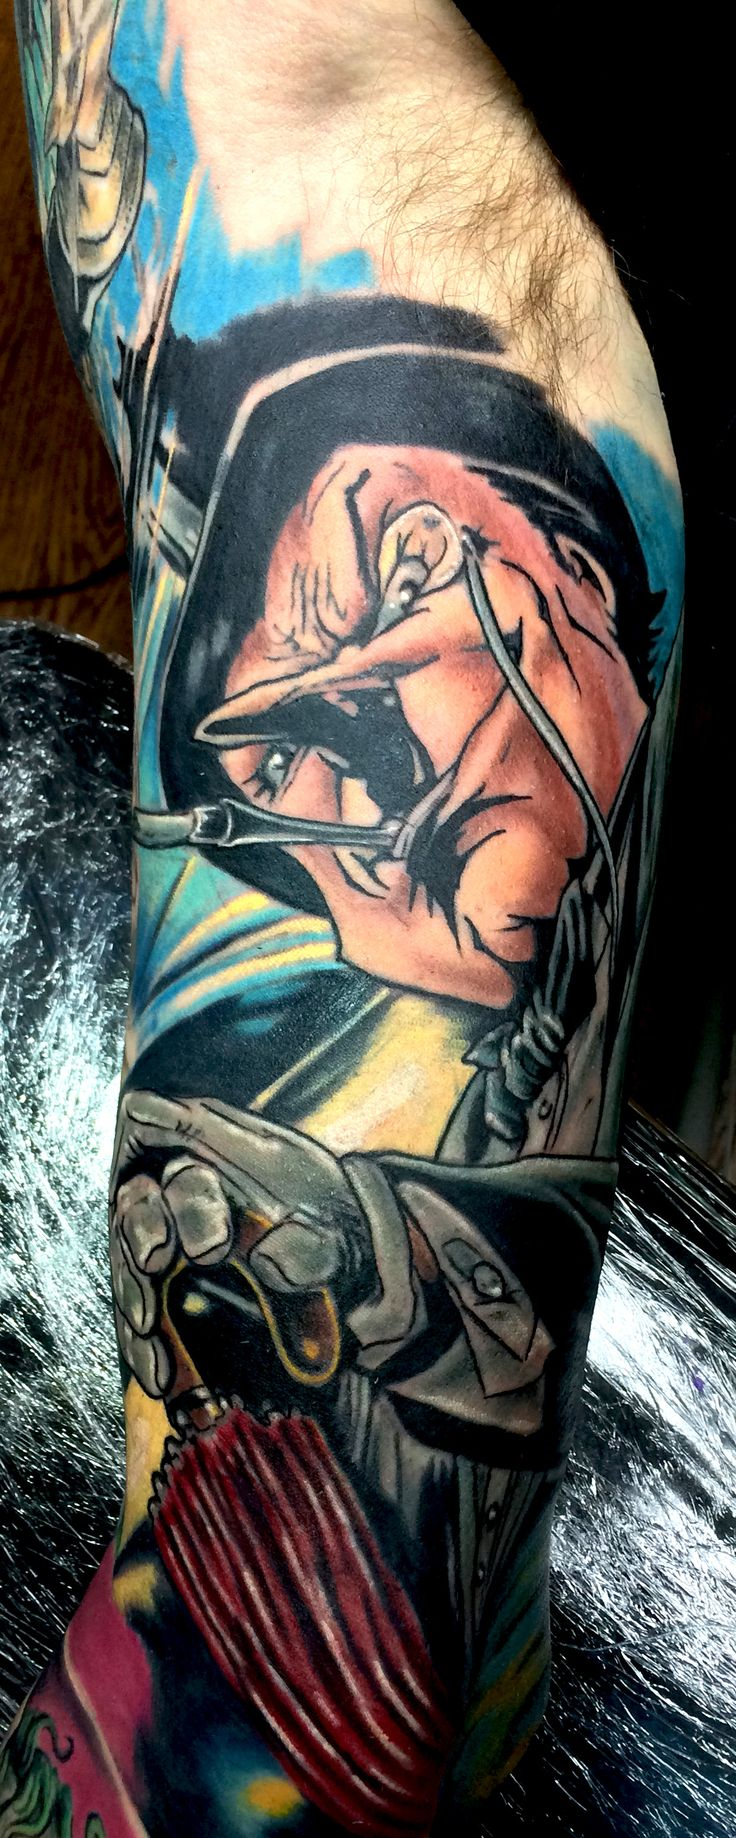 Flaming art tattoo for geek tattoo lovers this kind of batman - Find This Pin And More On Batman Villain Tattoos